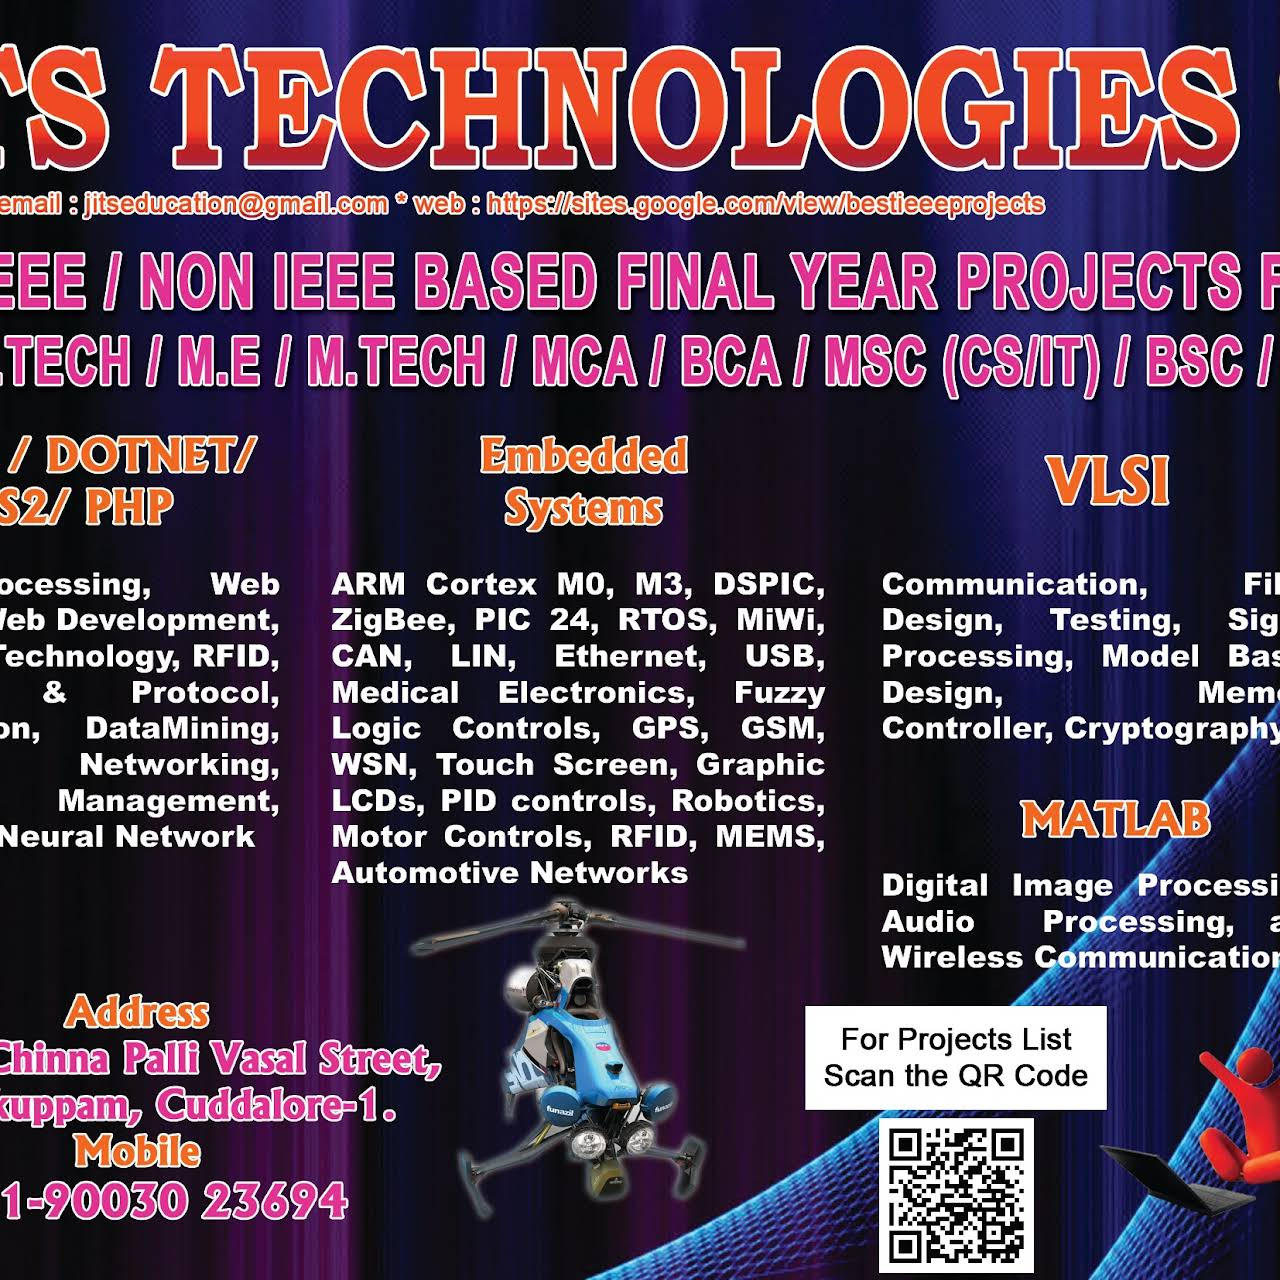 Jits Technologies Education Center In Manjakuppam